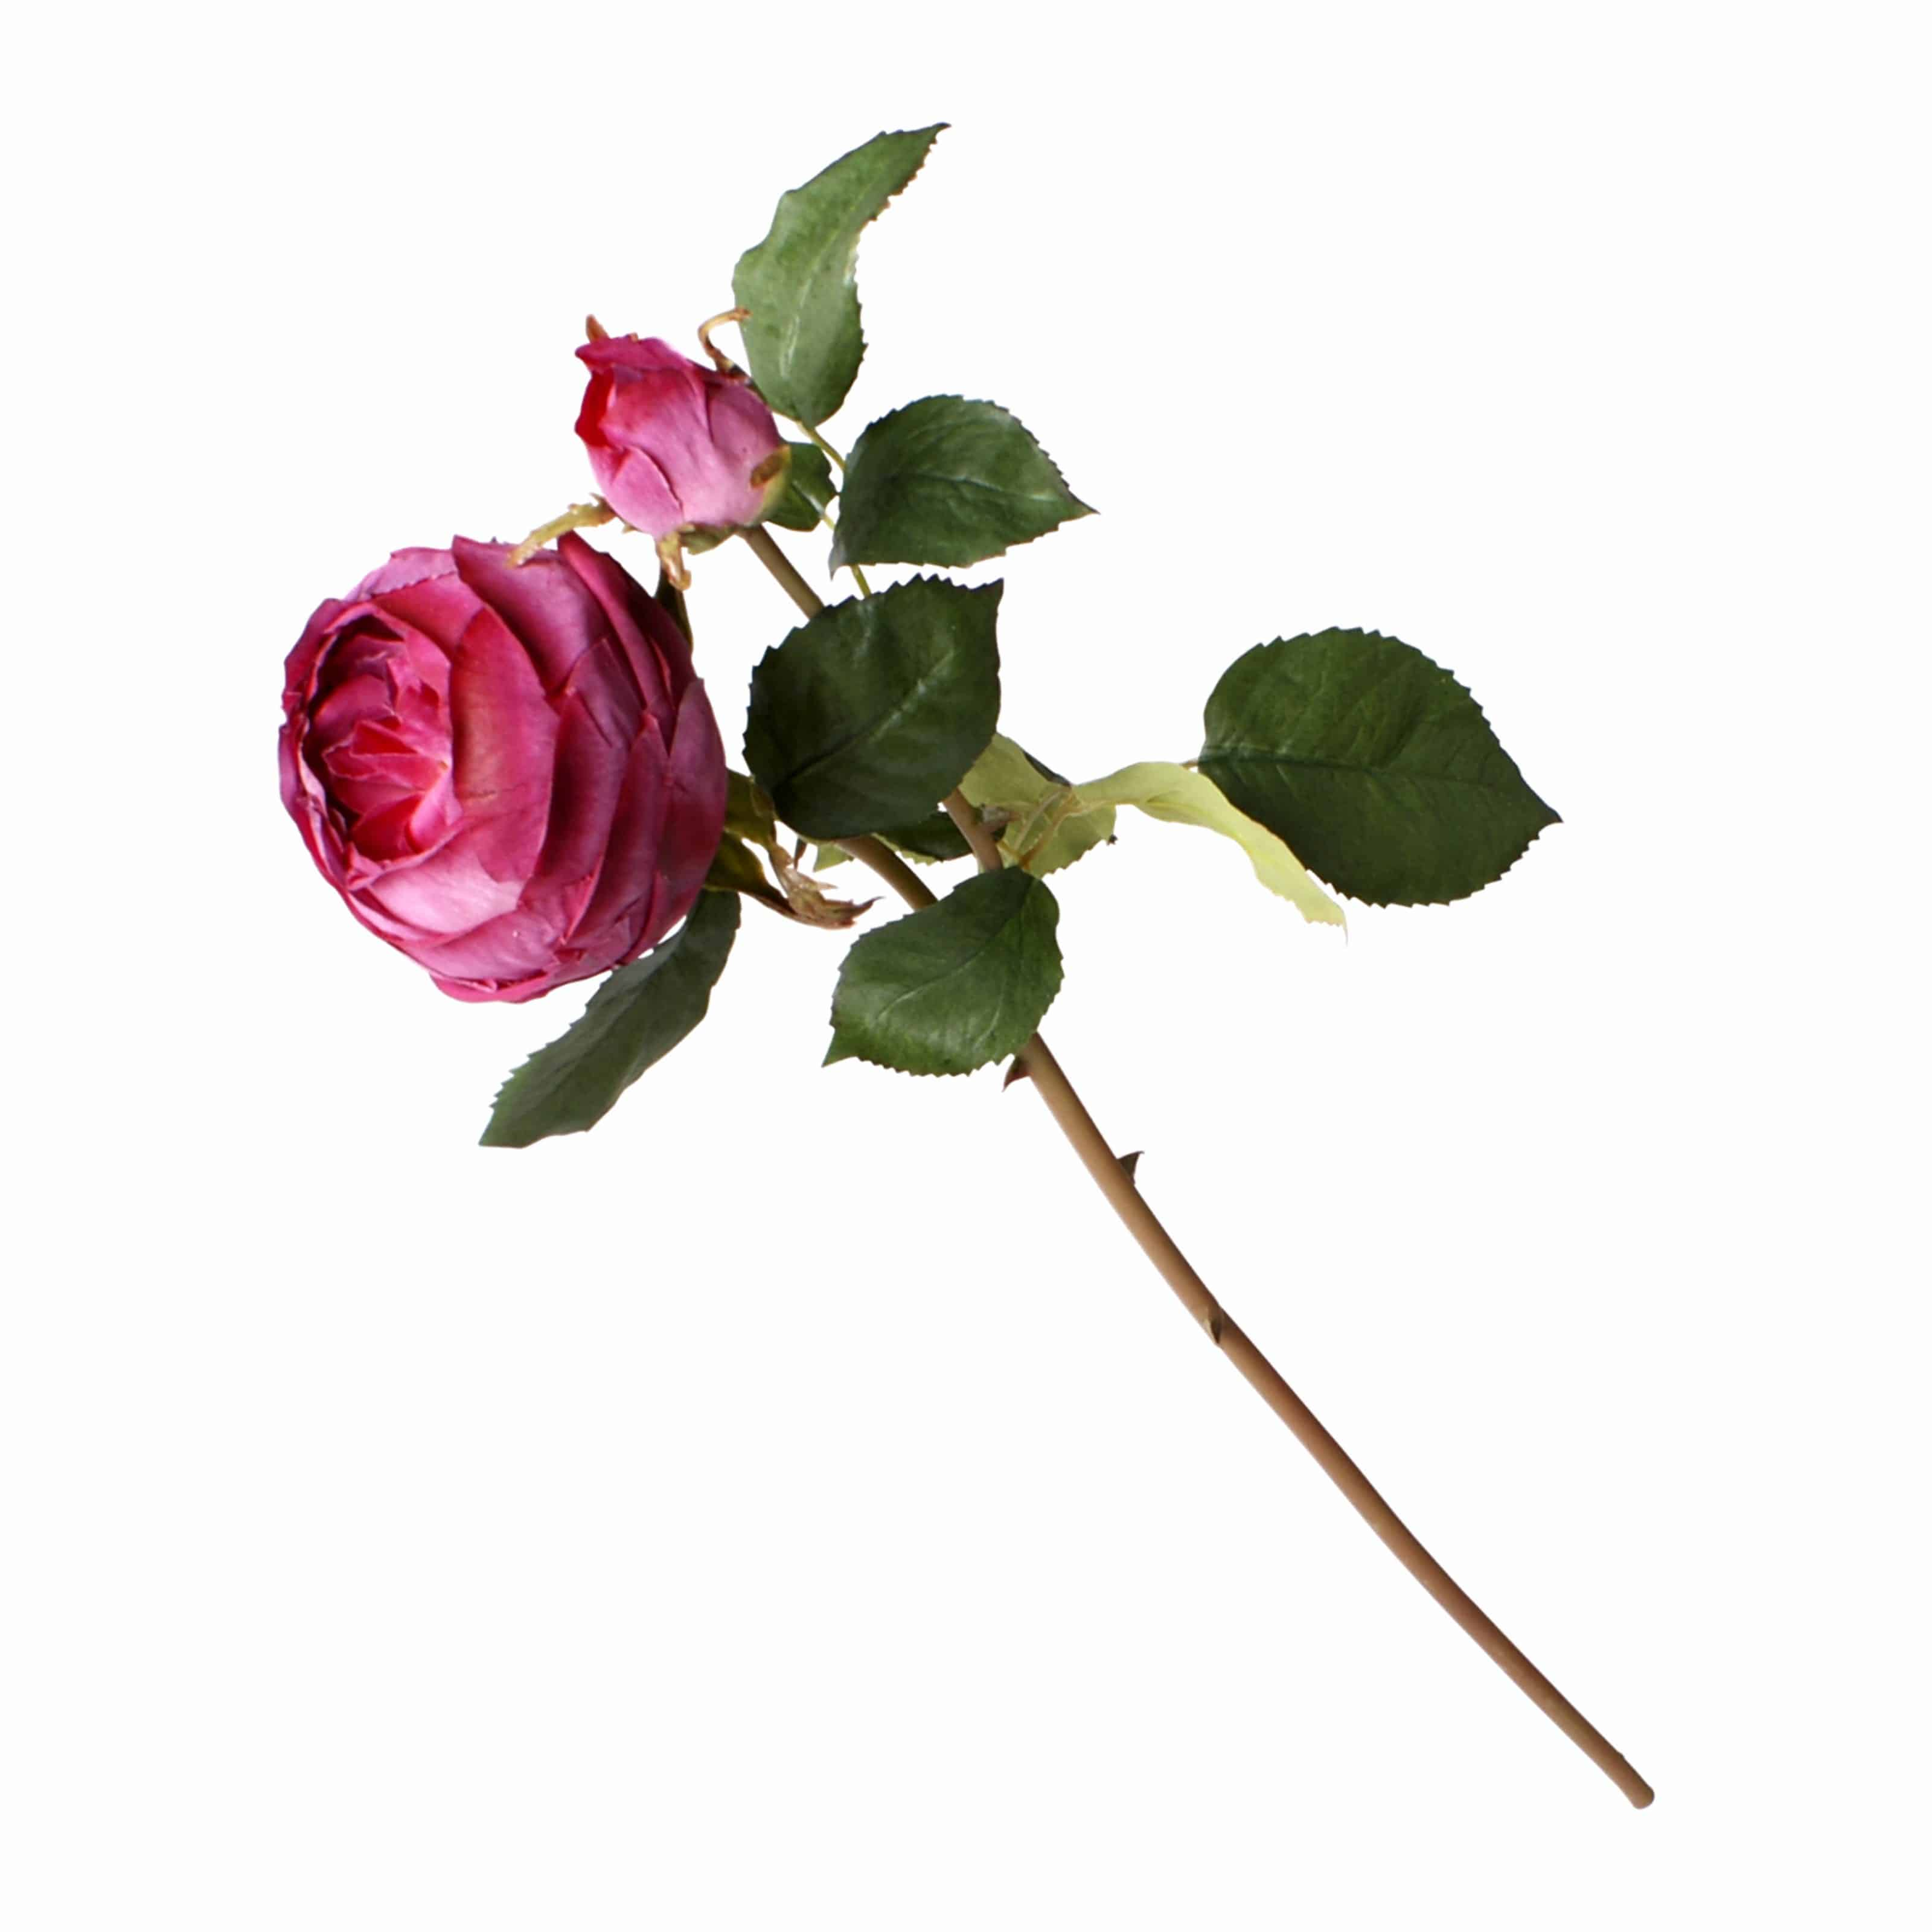 Buy our best fully bloomed rose silk flowers. Rich wine red colour of densely layered petals including a budding flower. Perfect for tall arrangements.